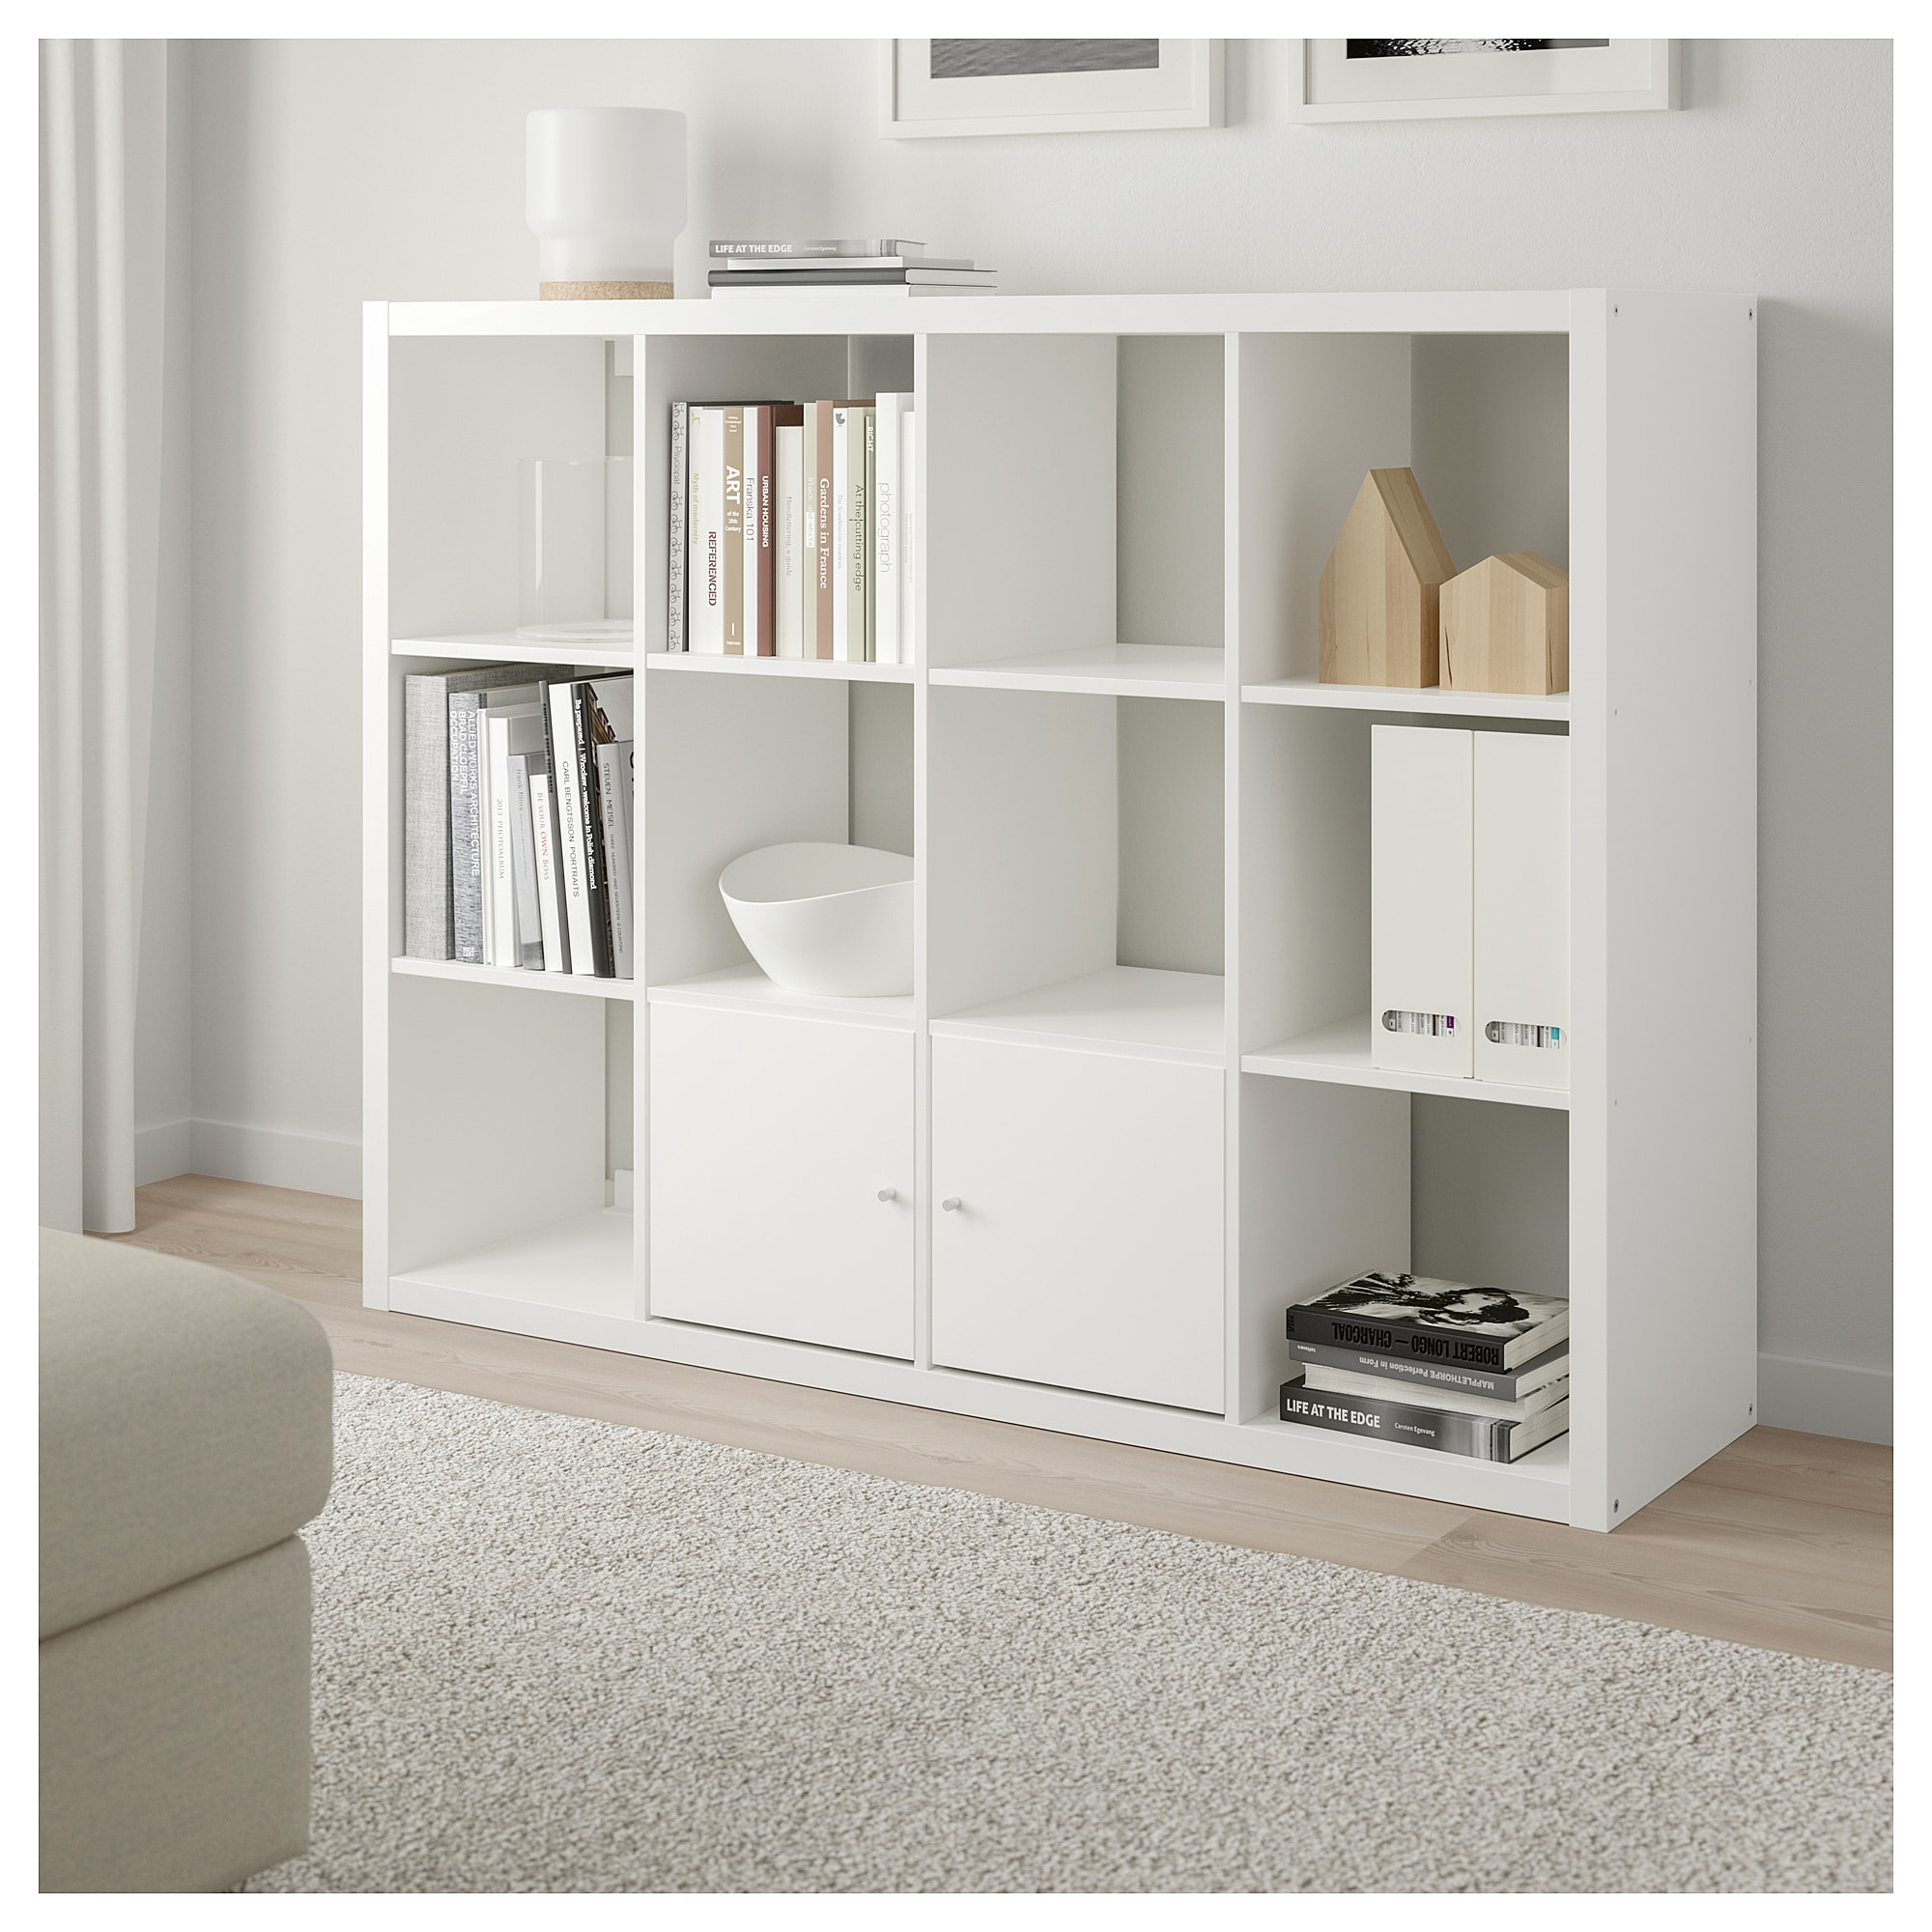 Ikea Kallax Shelf Unit White In 2019 Bedroom Furniture